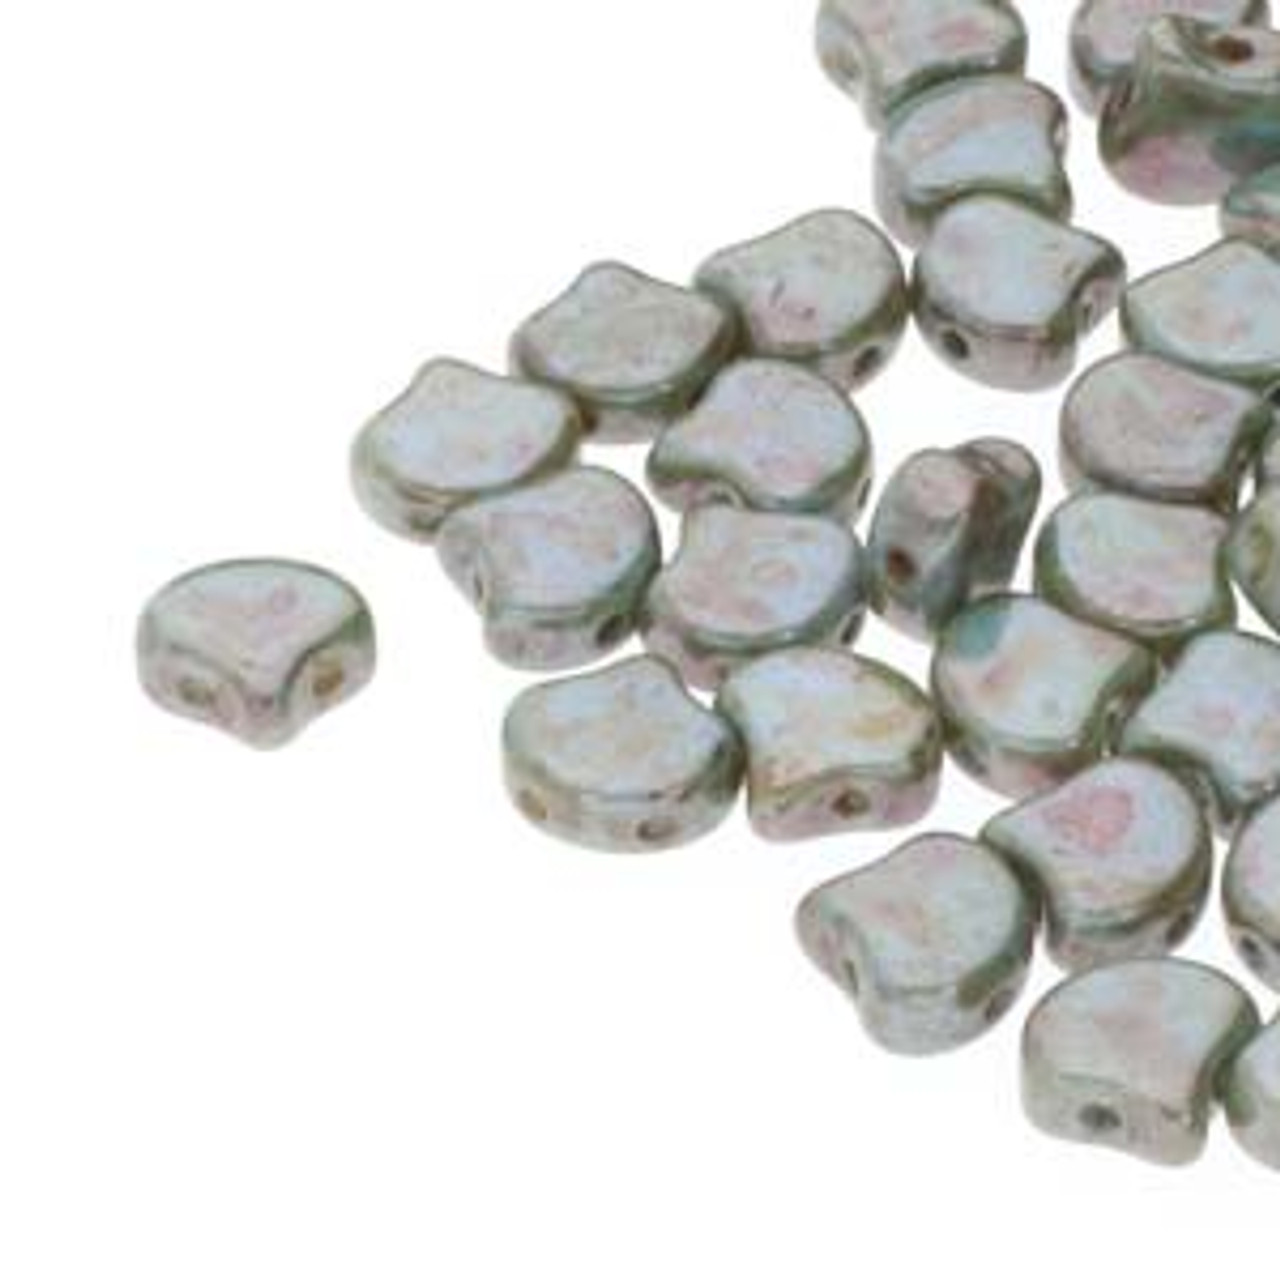 7.5x7.5mm Chalk Lazure Blue Two Hole Ginko Beads (8 Grams) Approx 30-35 Beads